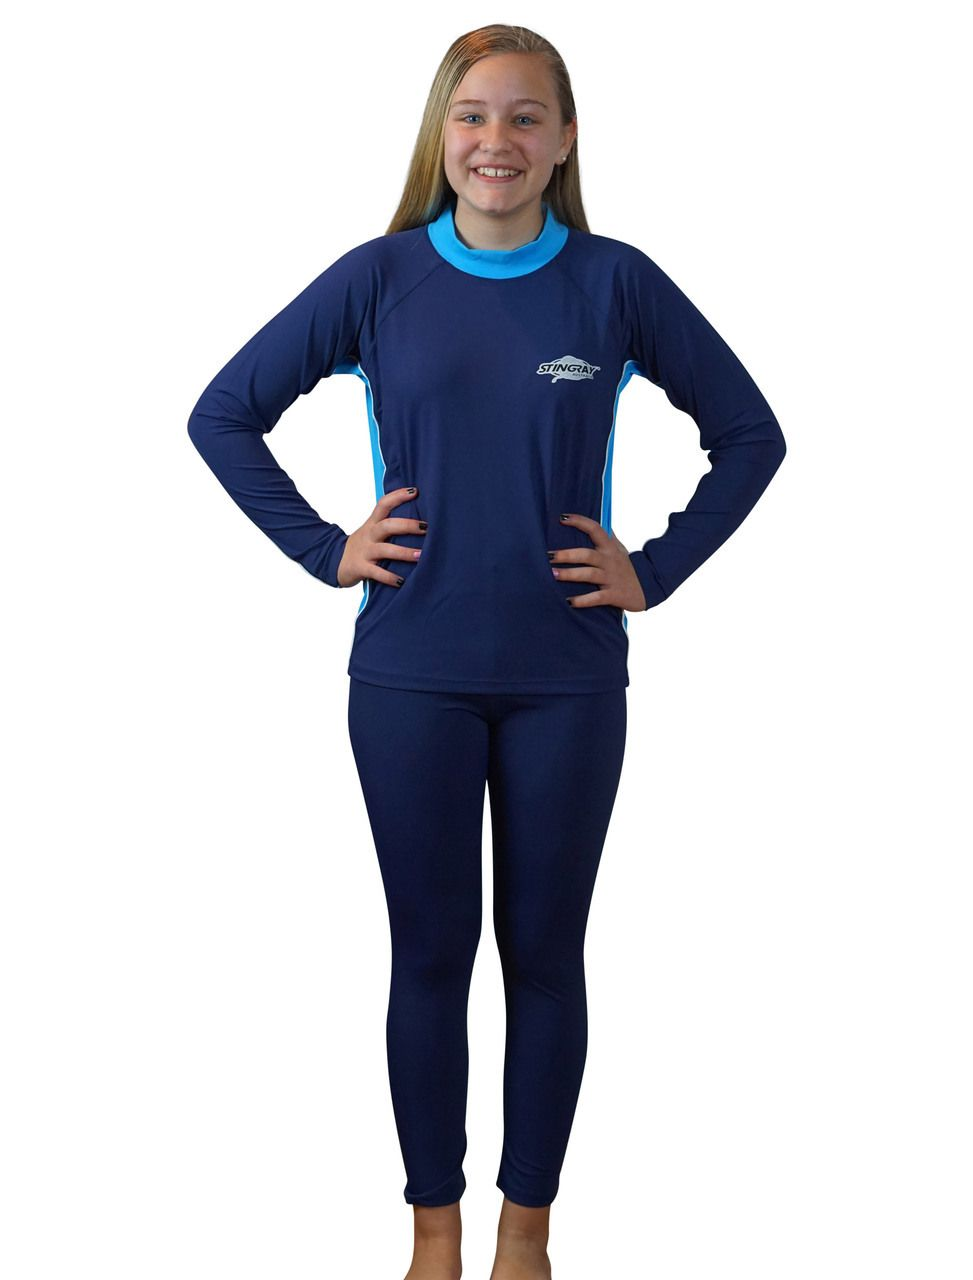 fda33988 Girls Swim Shirt and Tights Set - Long Sleeves & Long Pants- sizes 4 ...